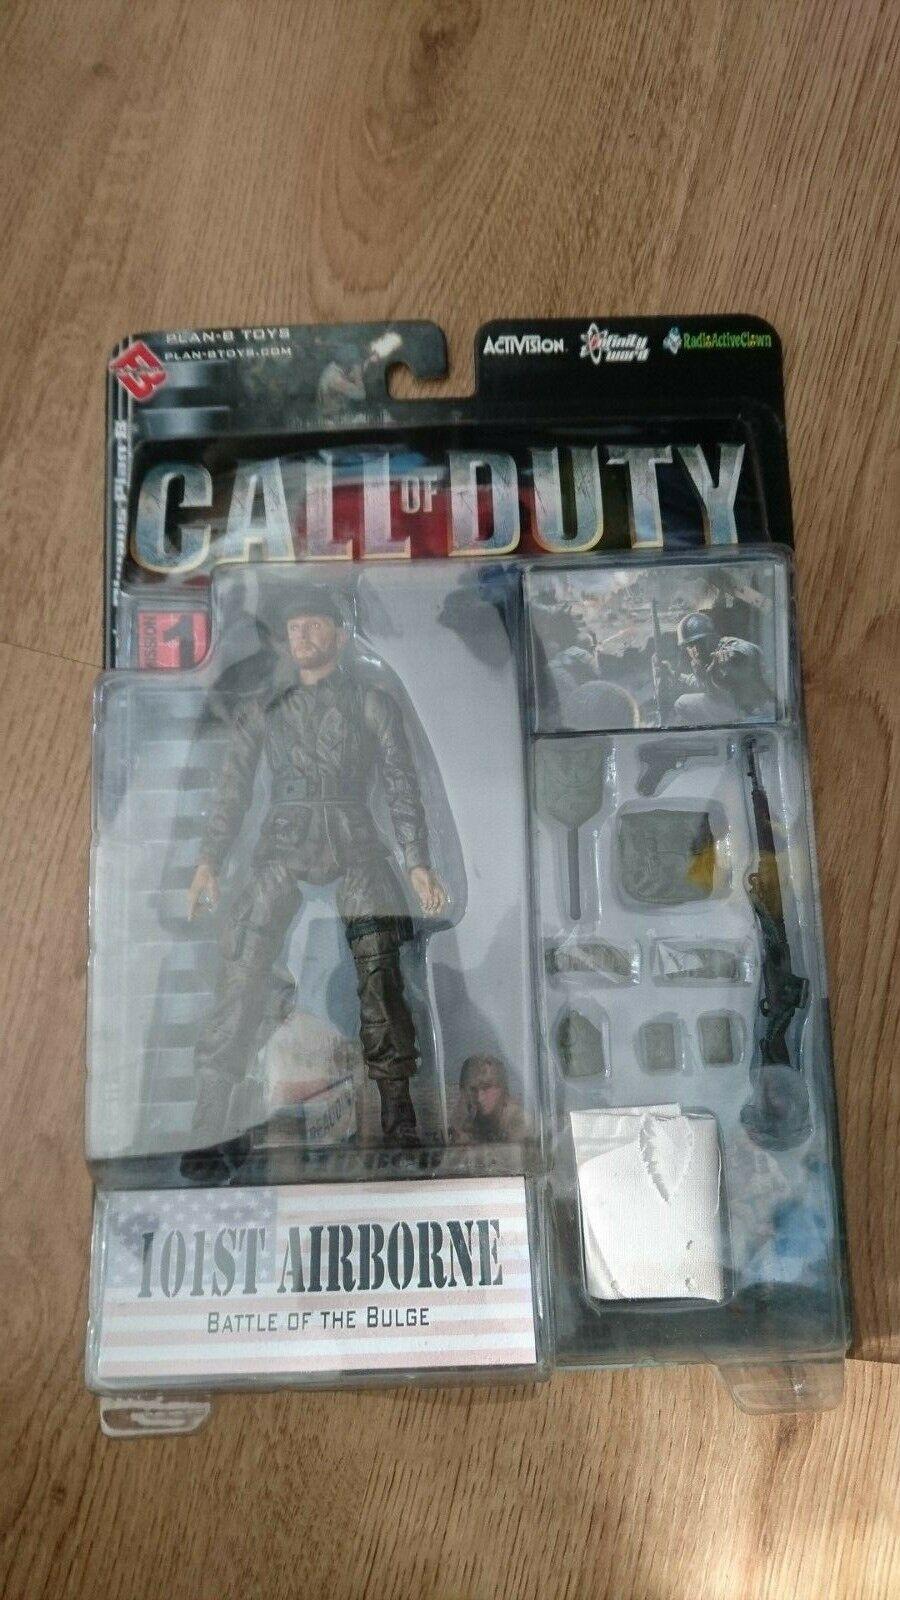 CALL OF DUTY WWII AMERICAN 101st Airborne ACTION FIGURE PLAN-B PLAN-B PLAN-B TOYS - Brand New 72566a